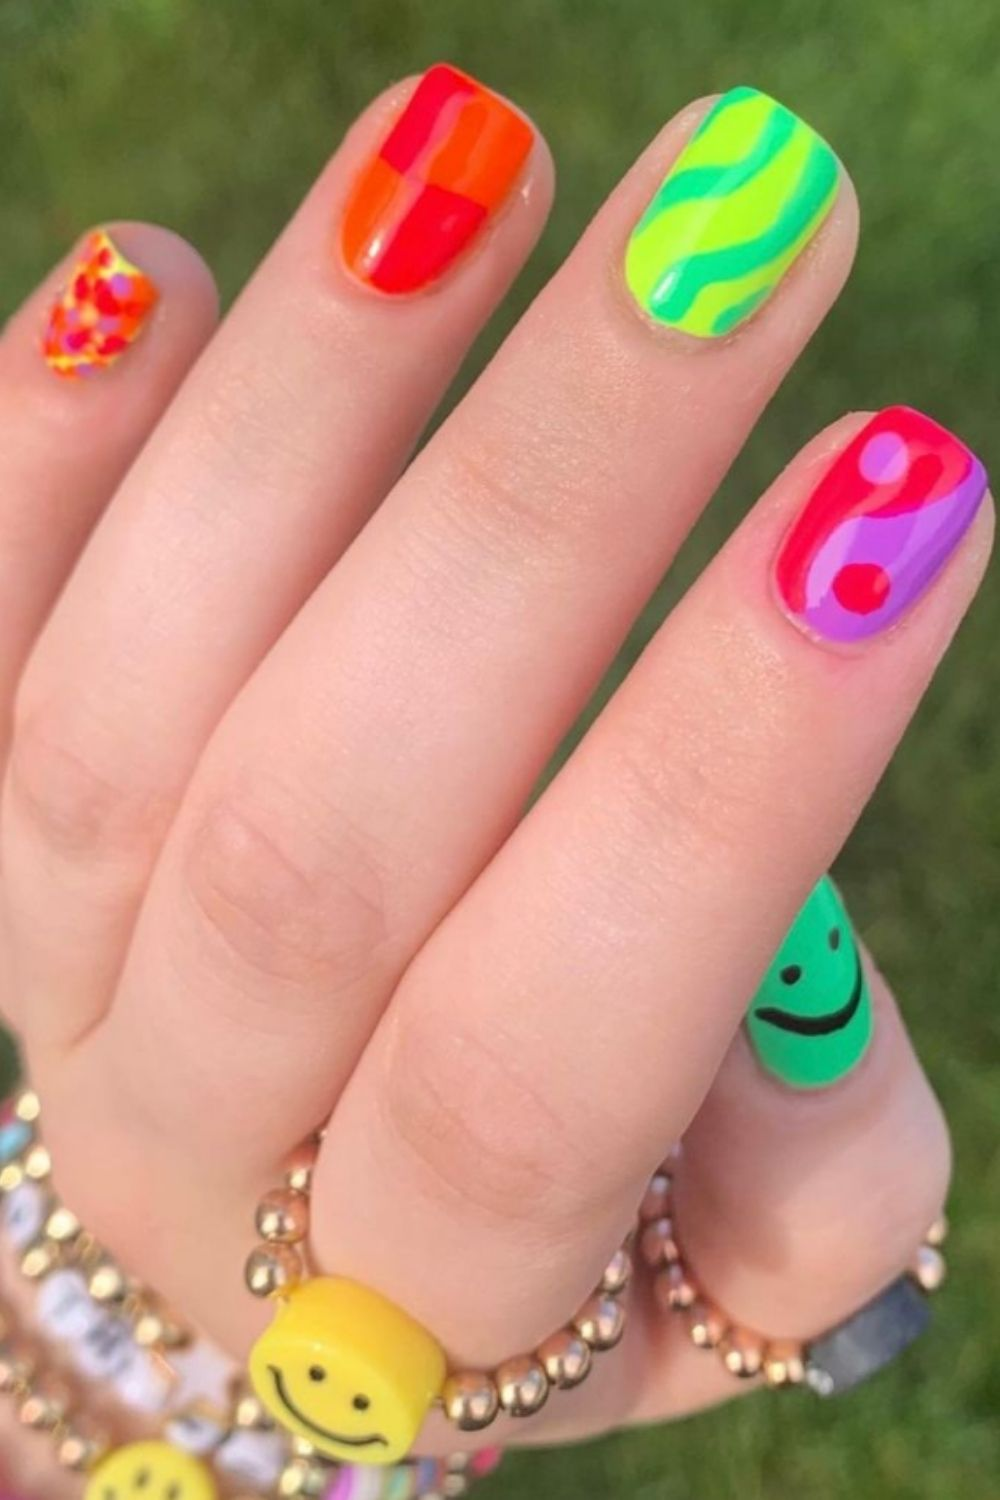 Summer nail trends 2021 | Best summer nail colors and polishes